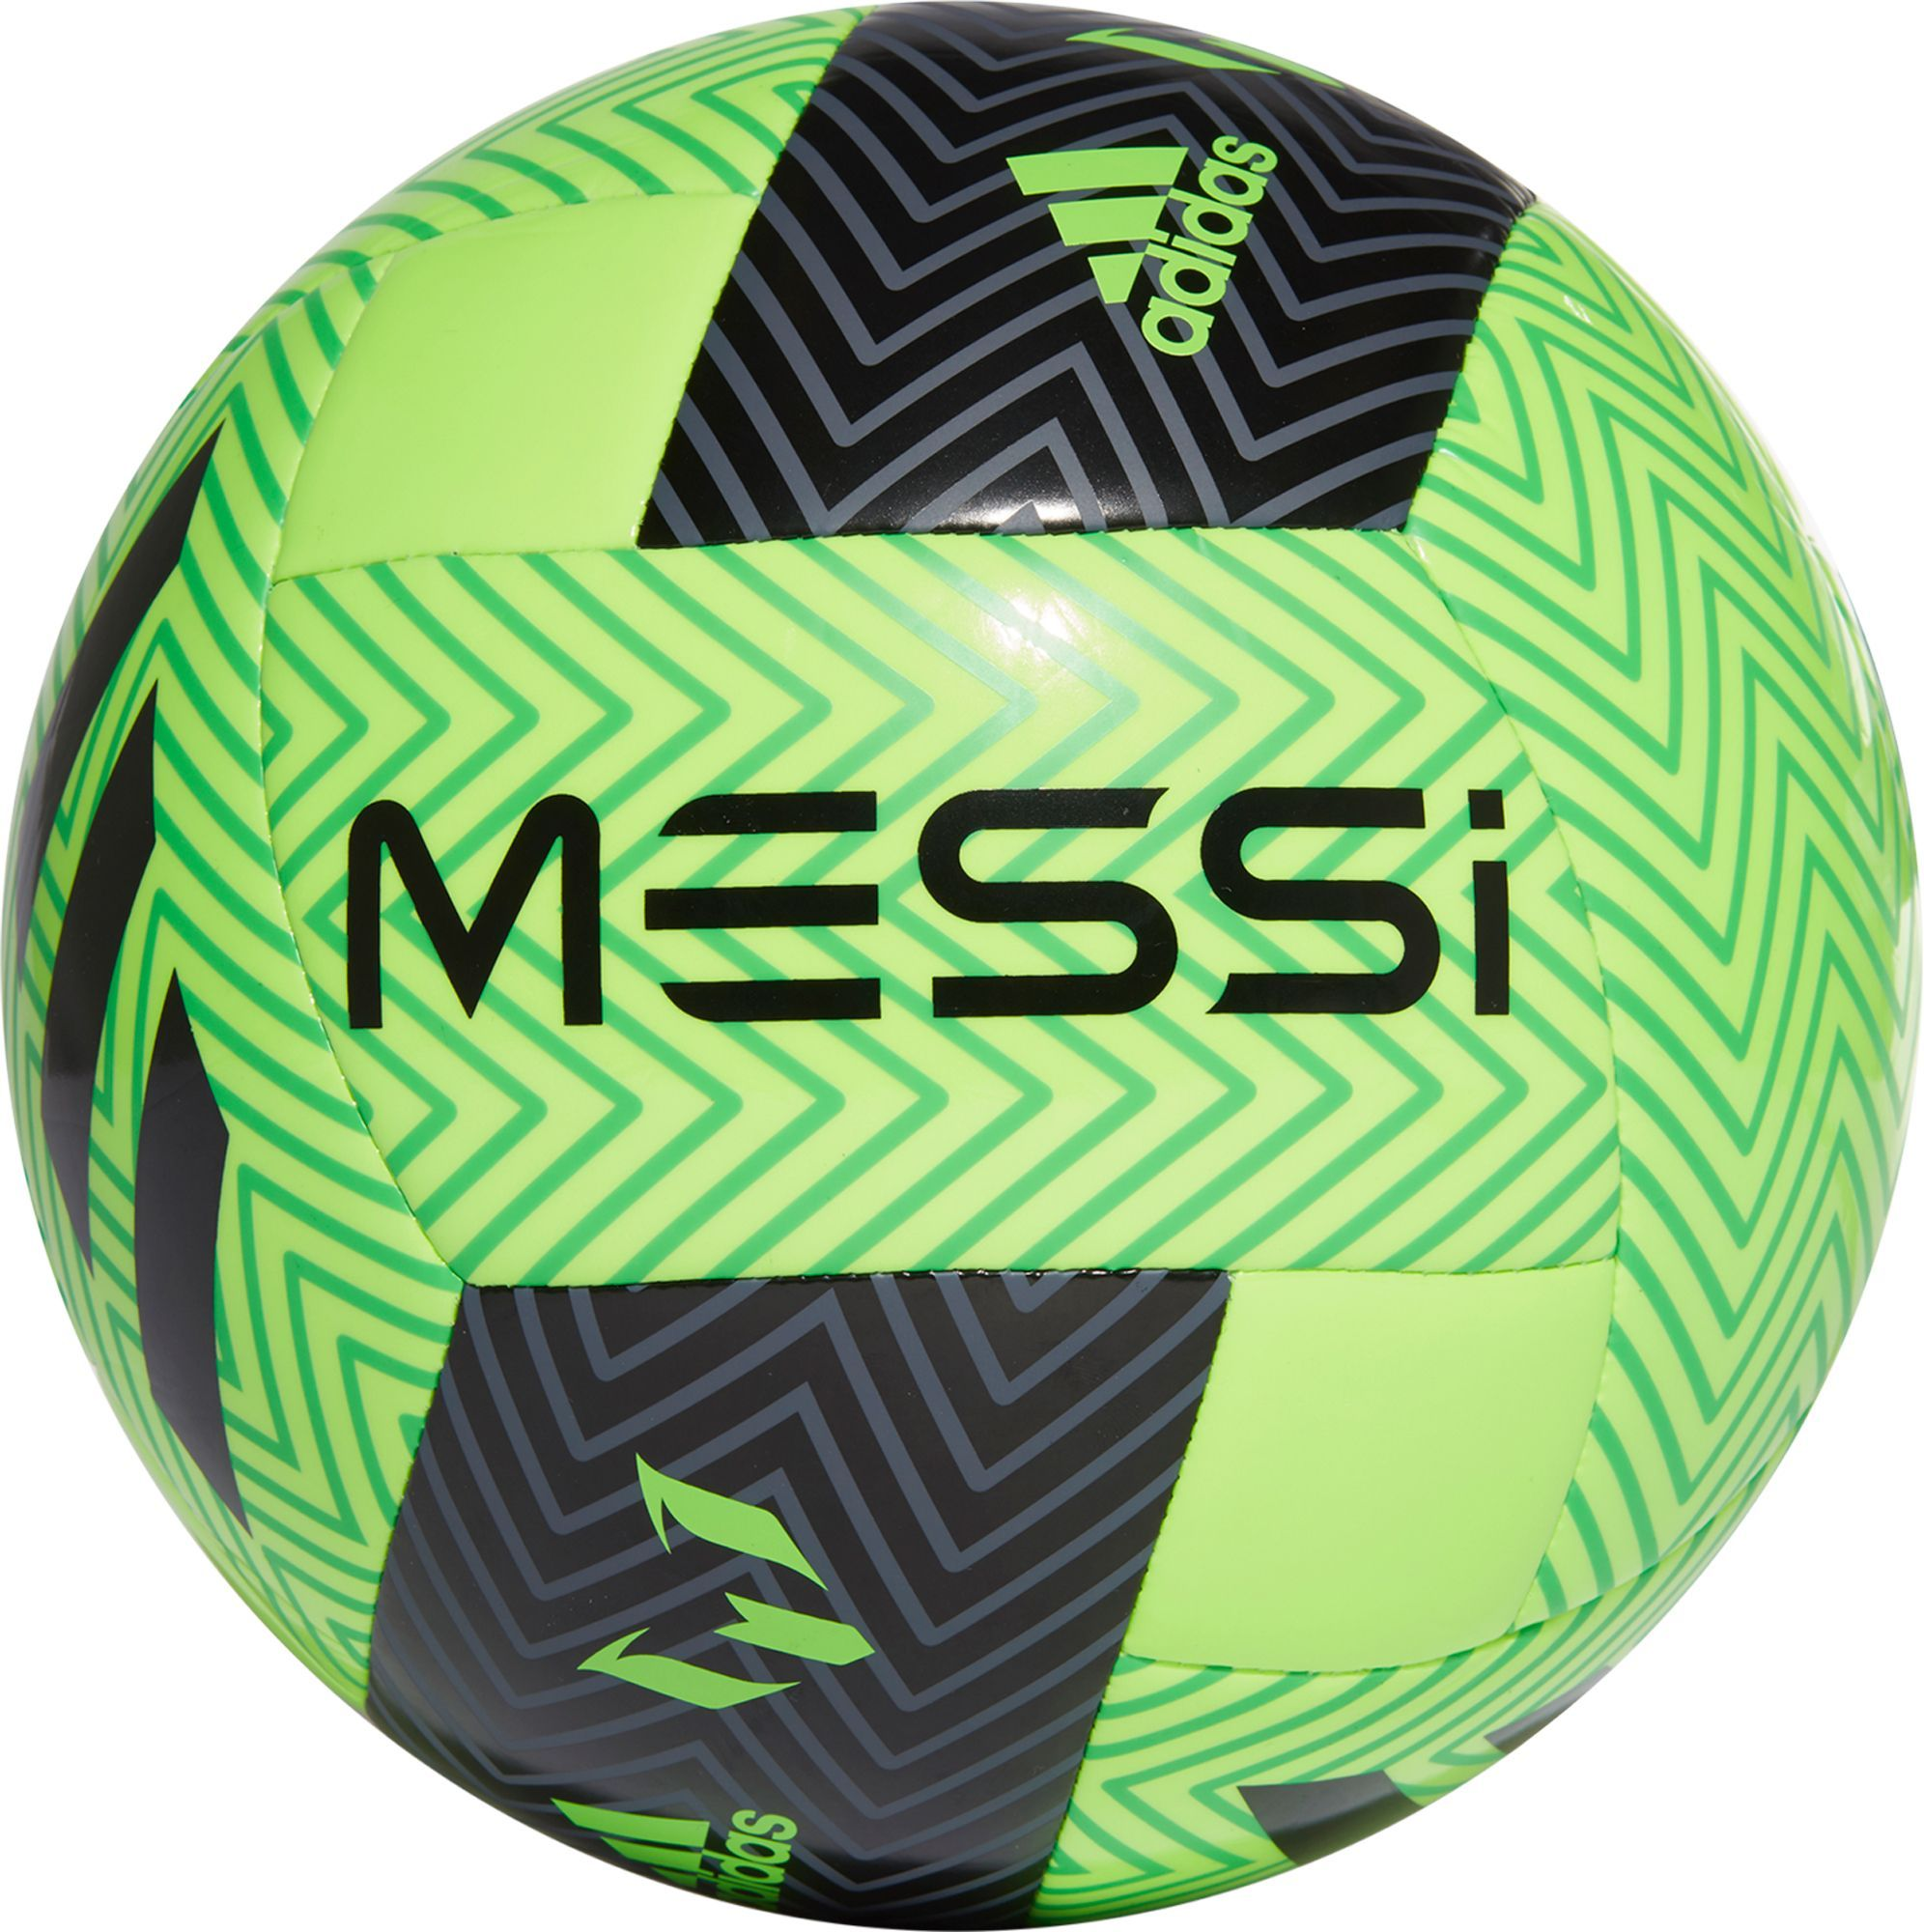 42677eb4e adidas Messi Glider Soccer Ball in 2019 | Products | Soccer ball ...